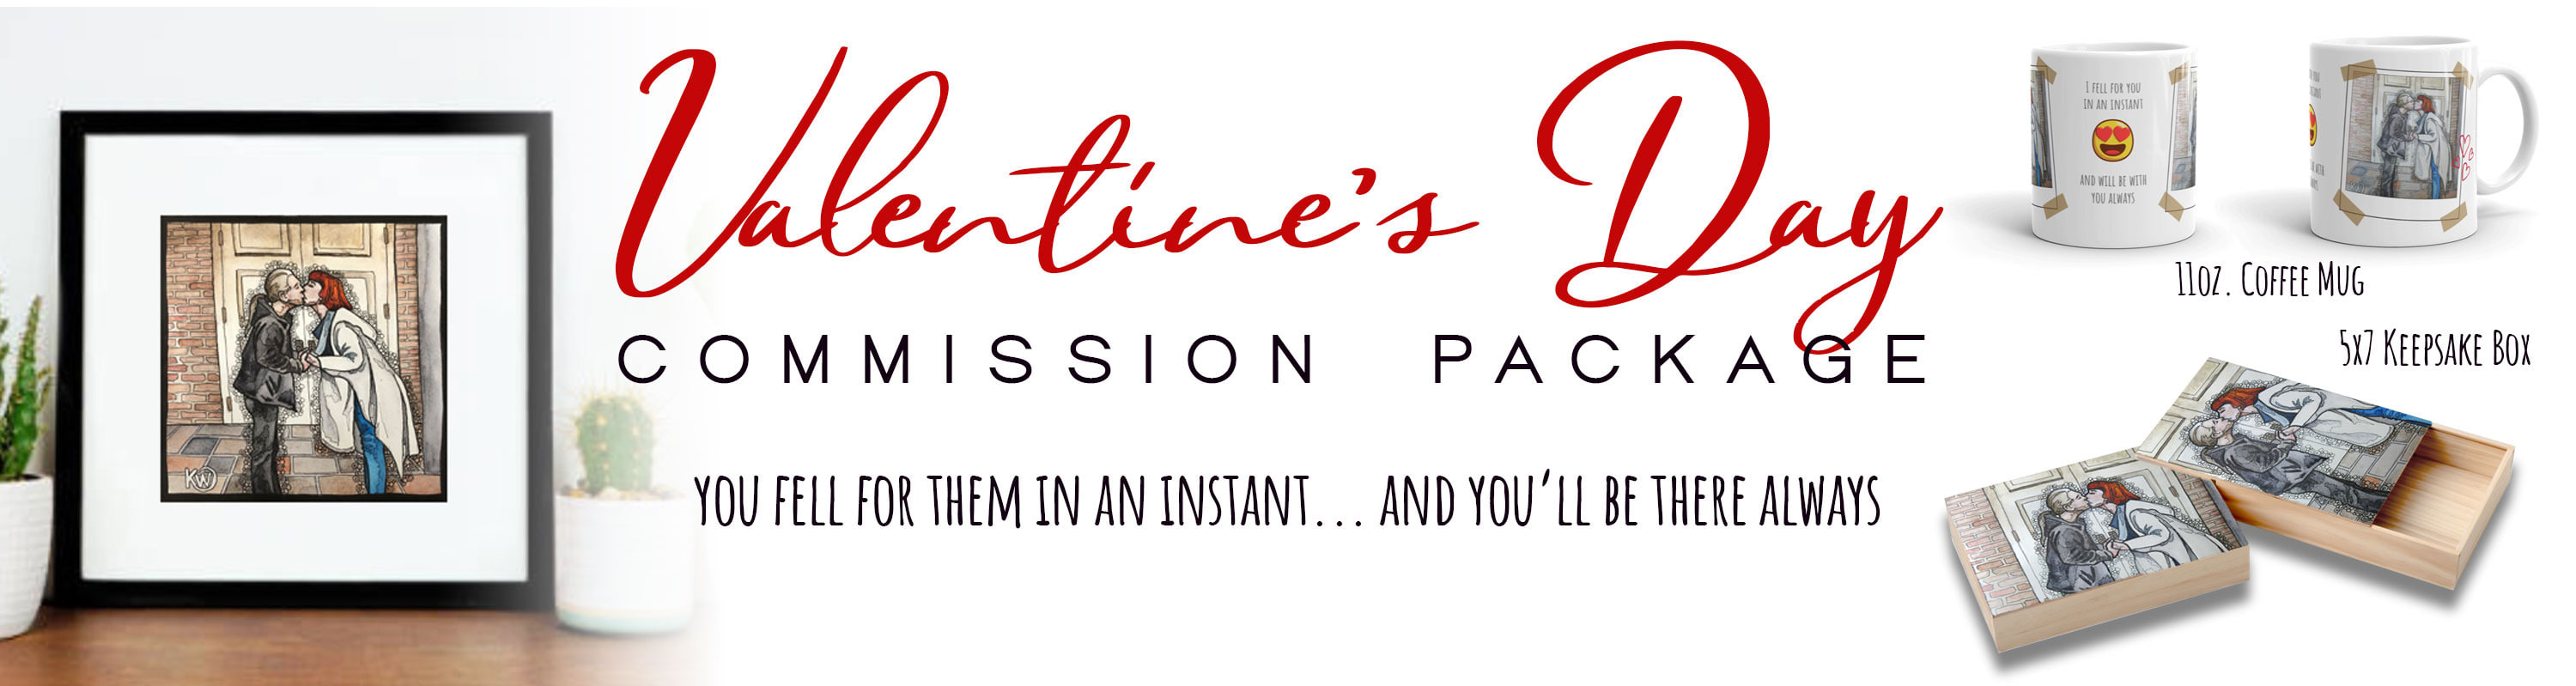 <div class='title'>           Valentines Commission Package         </div>                 <div class='description'>           Valentines Commission Package         </div>